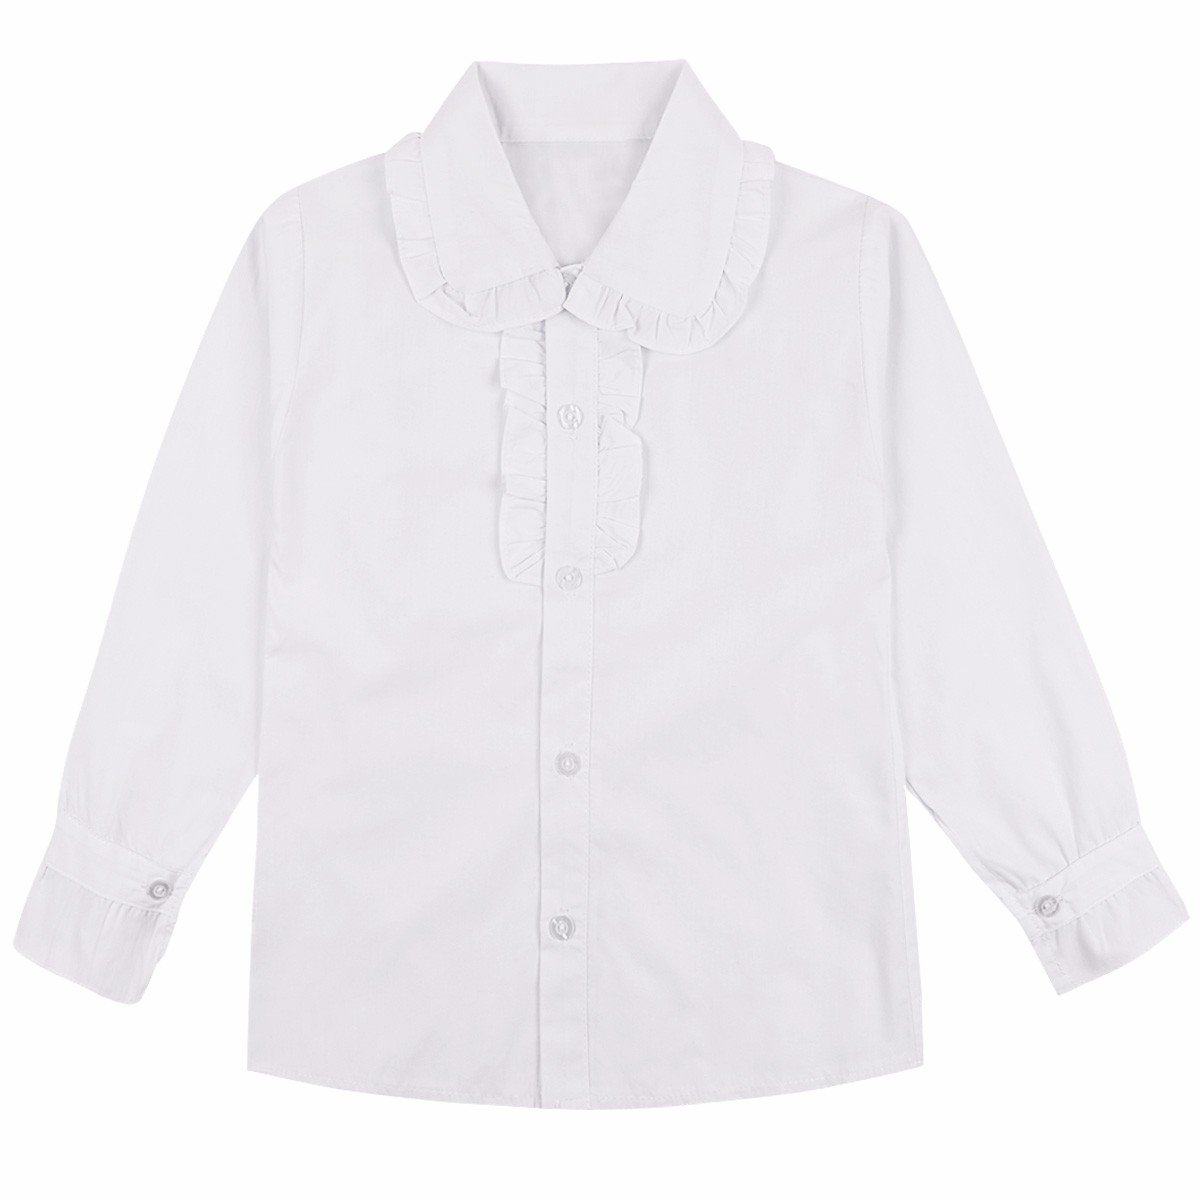 iEFiEL Girls School Uniforms Blouse Long Sleeve Cotton Button Down Oxford Shirt White 7-8